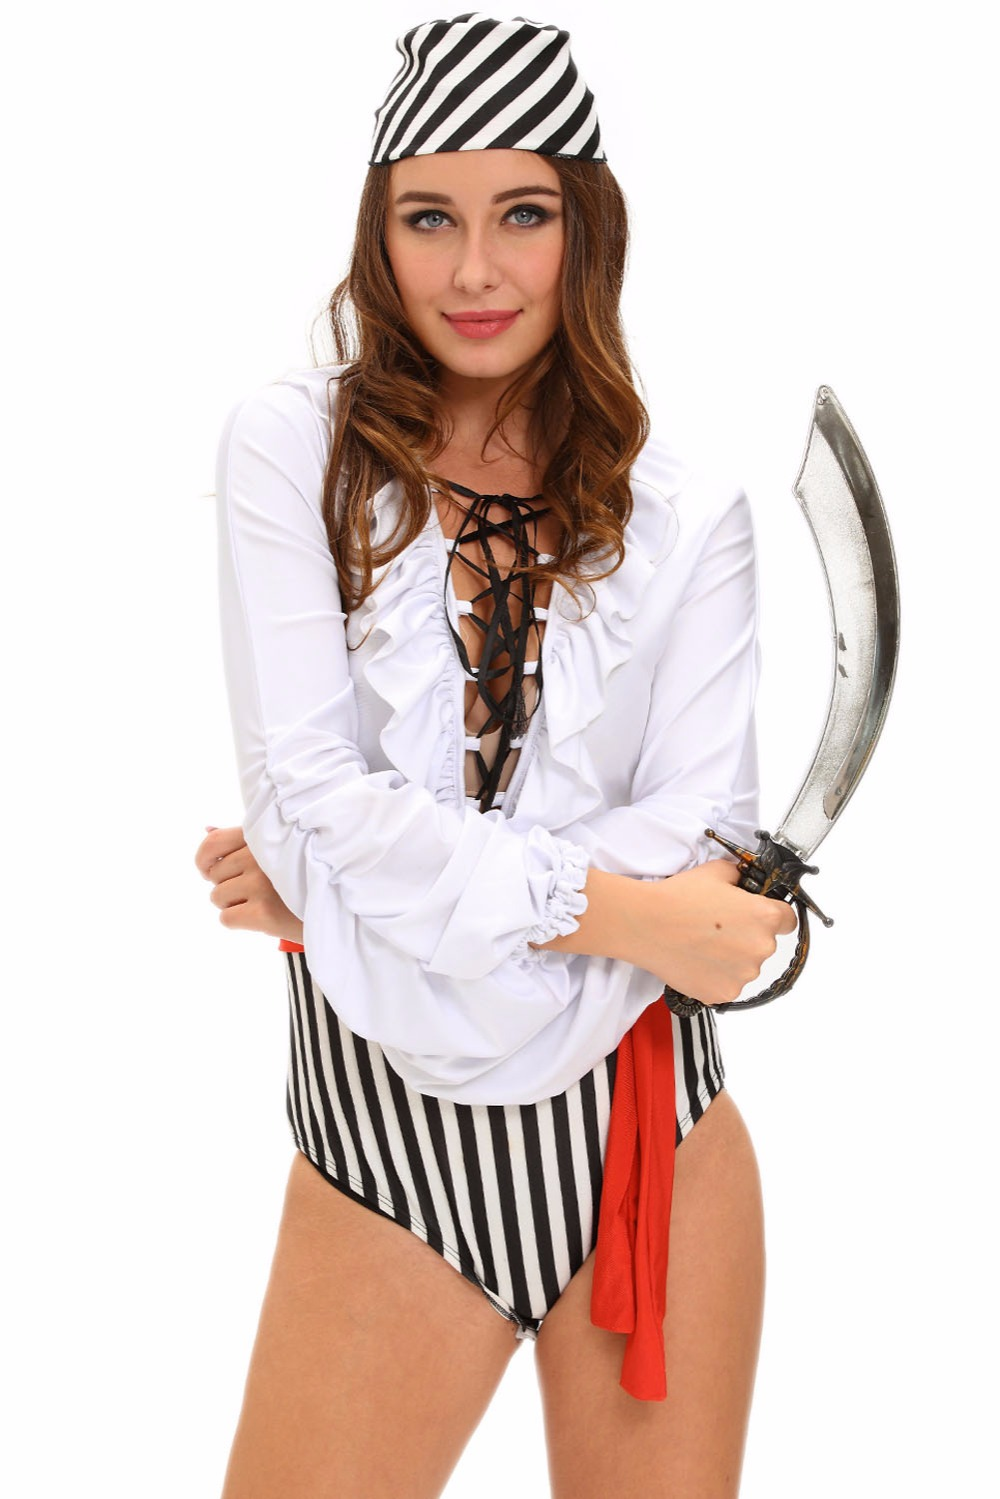 2017 new sexy adult costumes for women funny naughty pirate scoundrel long sleeve halloween cosplay lc8974 - Halloween Naughty Costumes